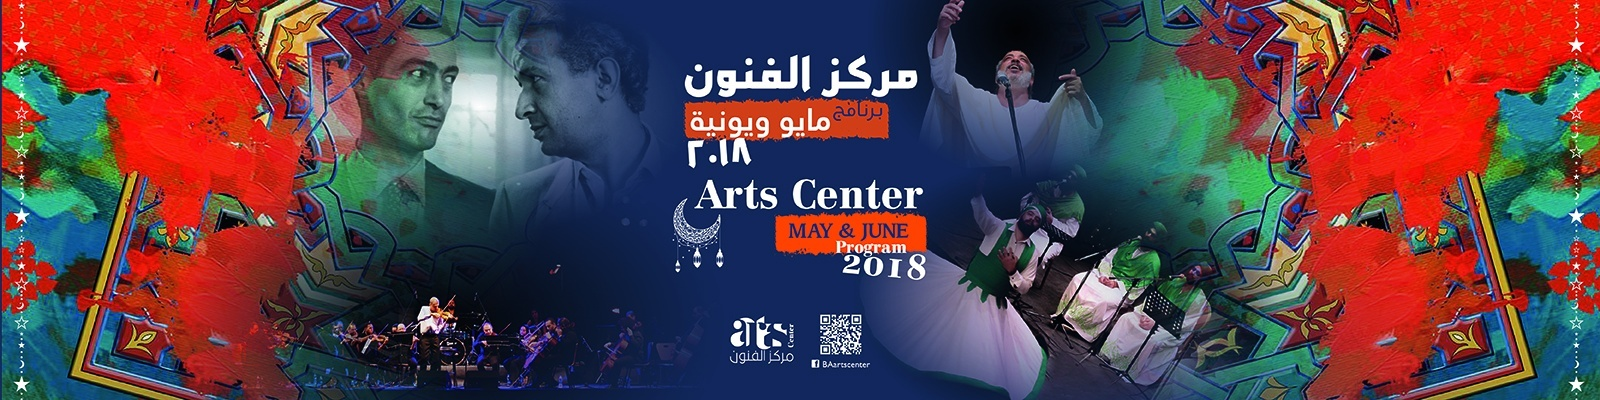 Arts Center May and June Program 2018